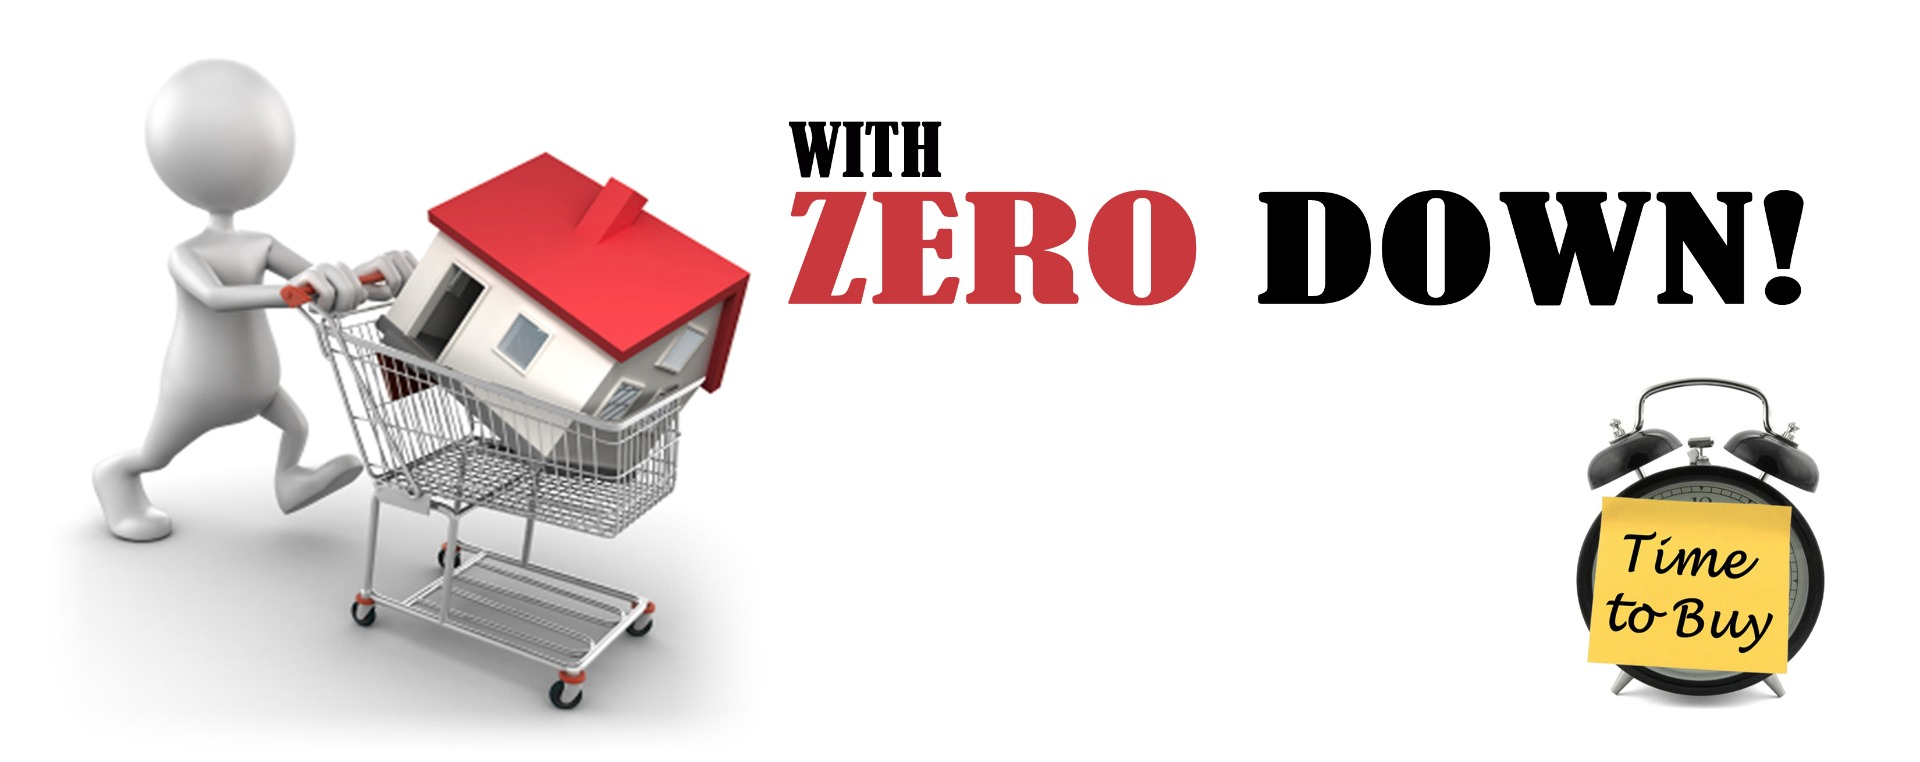 Buy A Home With A Zero Down Payment! - up to $400K ...